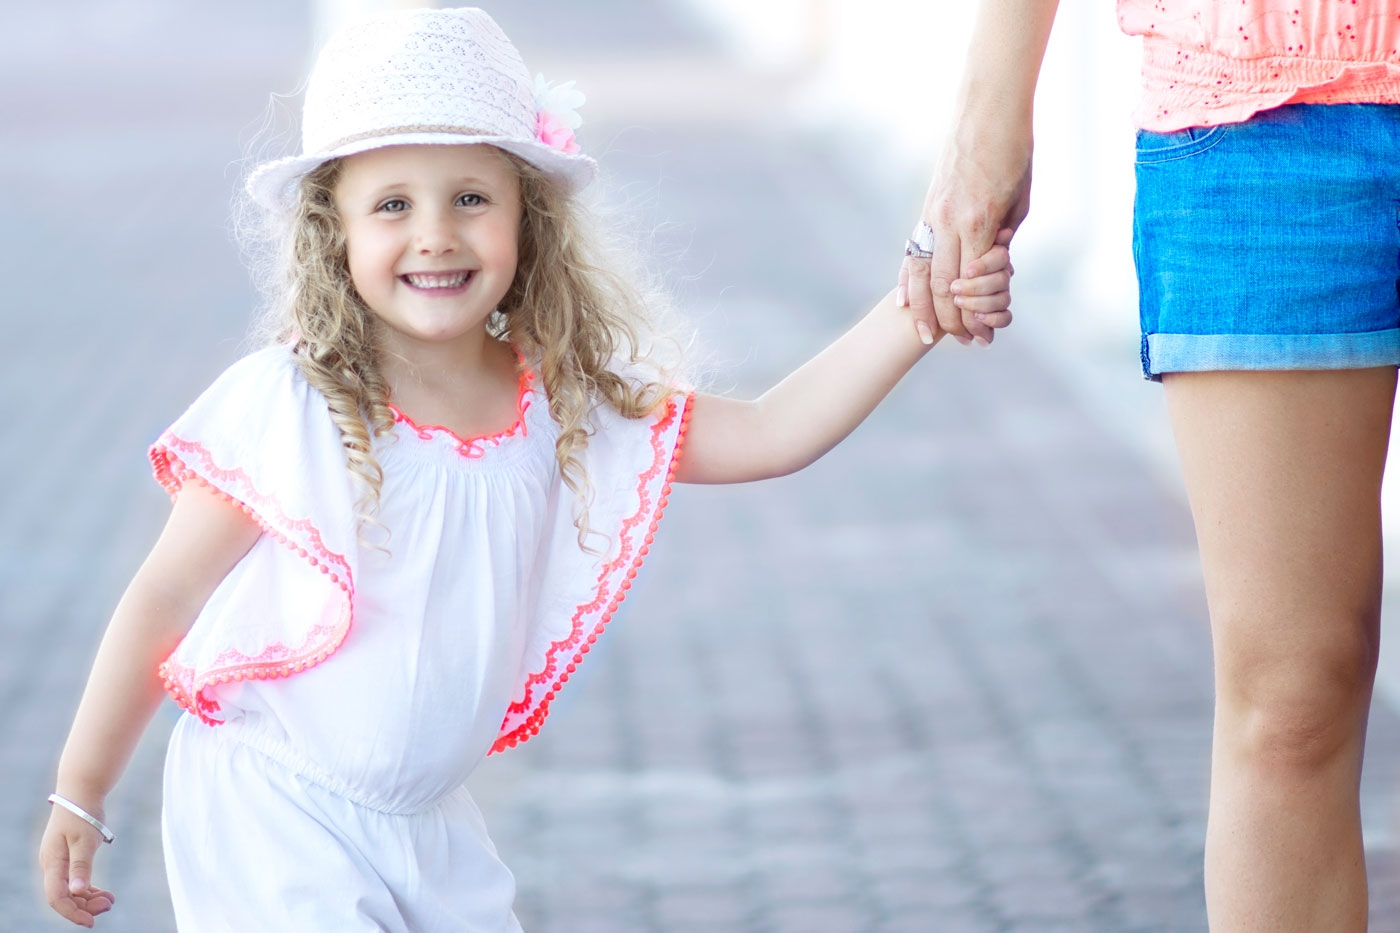 Children photographer in Poole and Bournemouth. Family photography in Dorset.